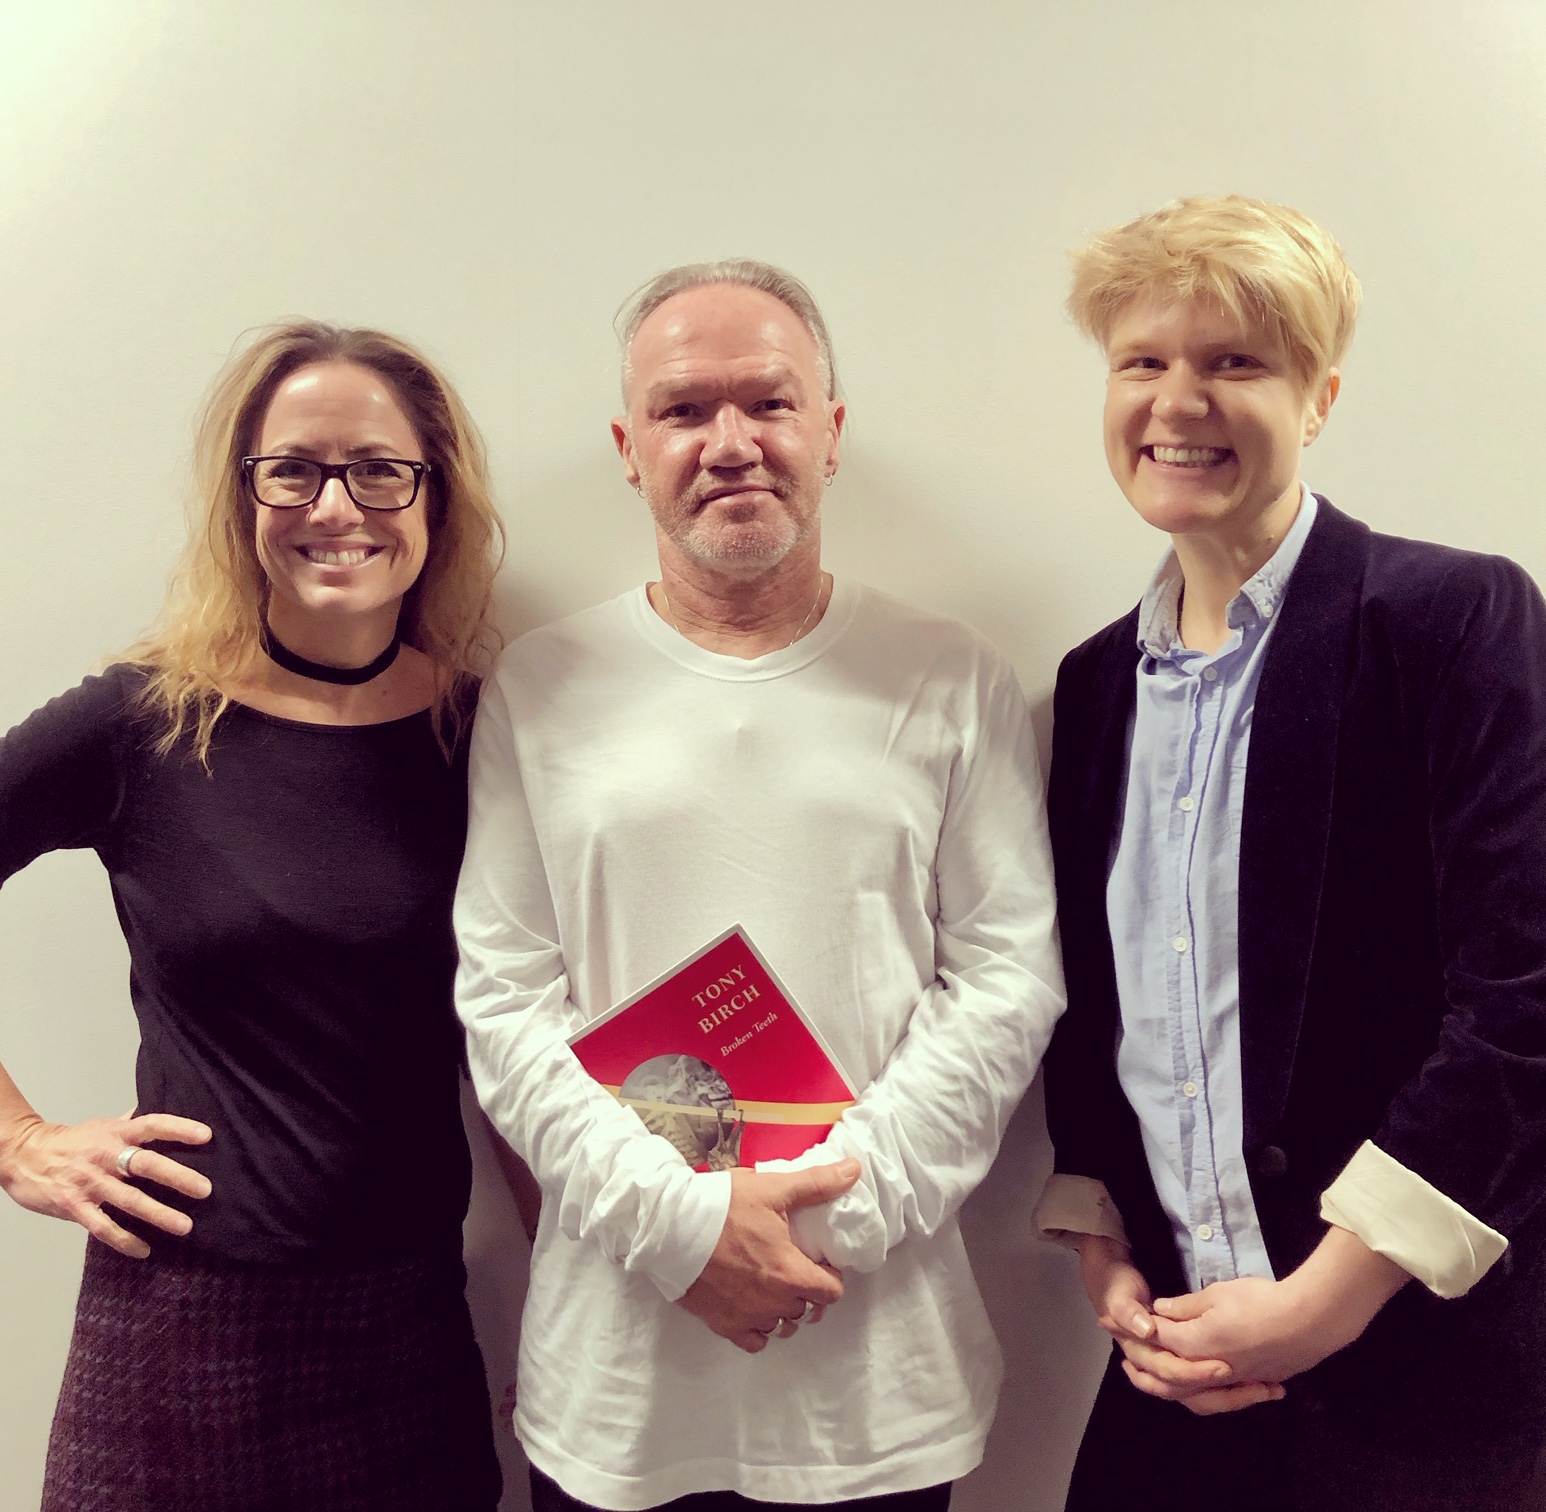 Clare Wright, Tony Birch, and Yves Rees